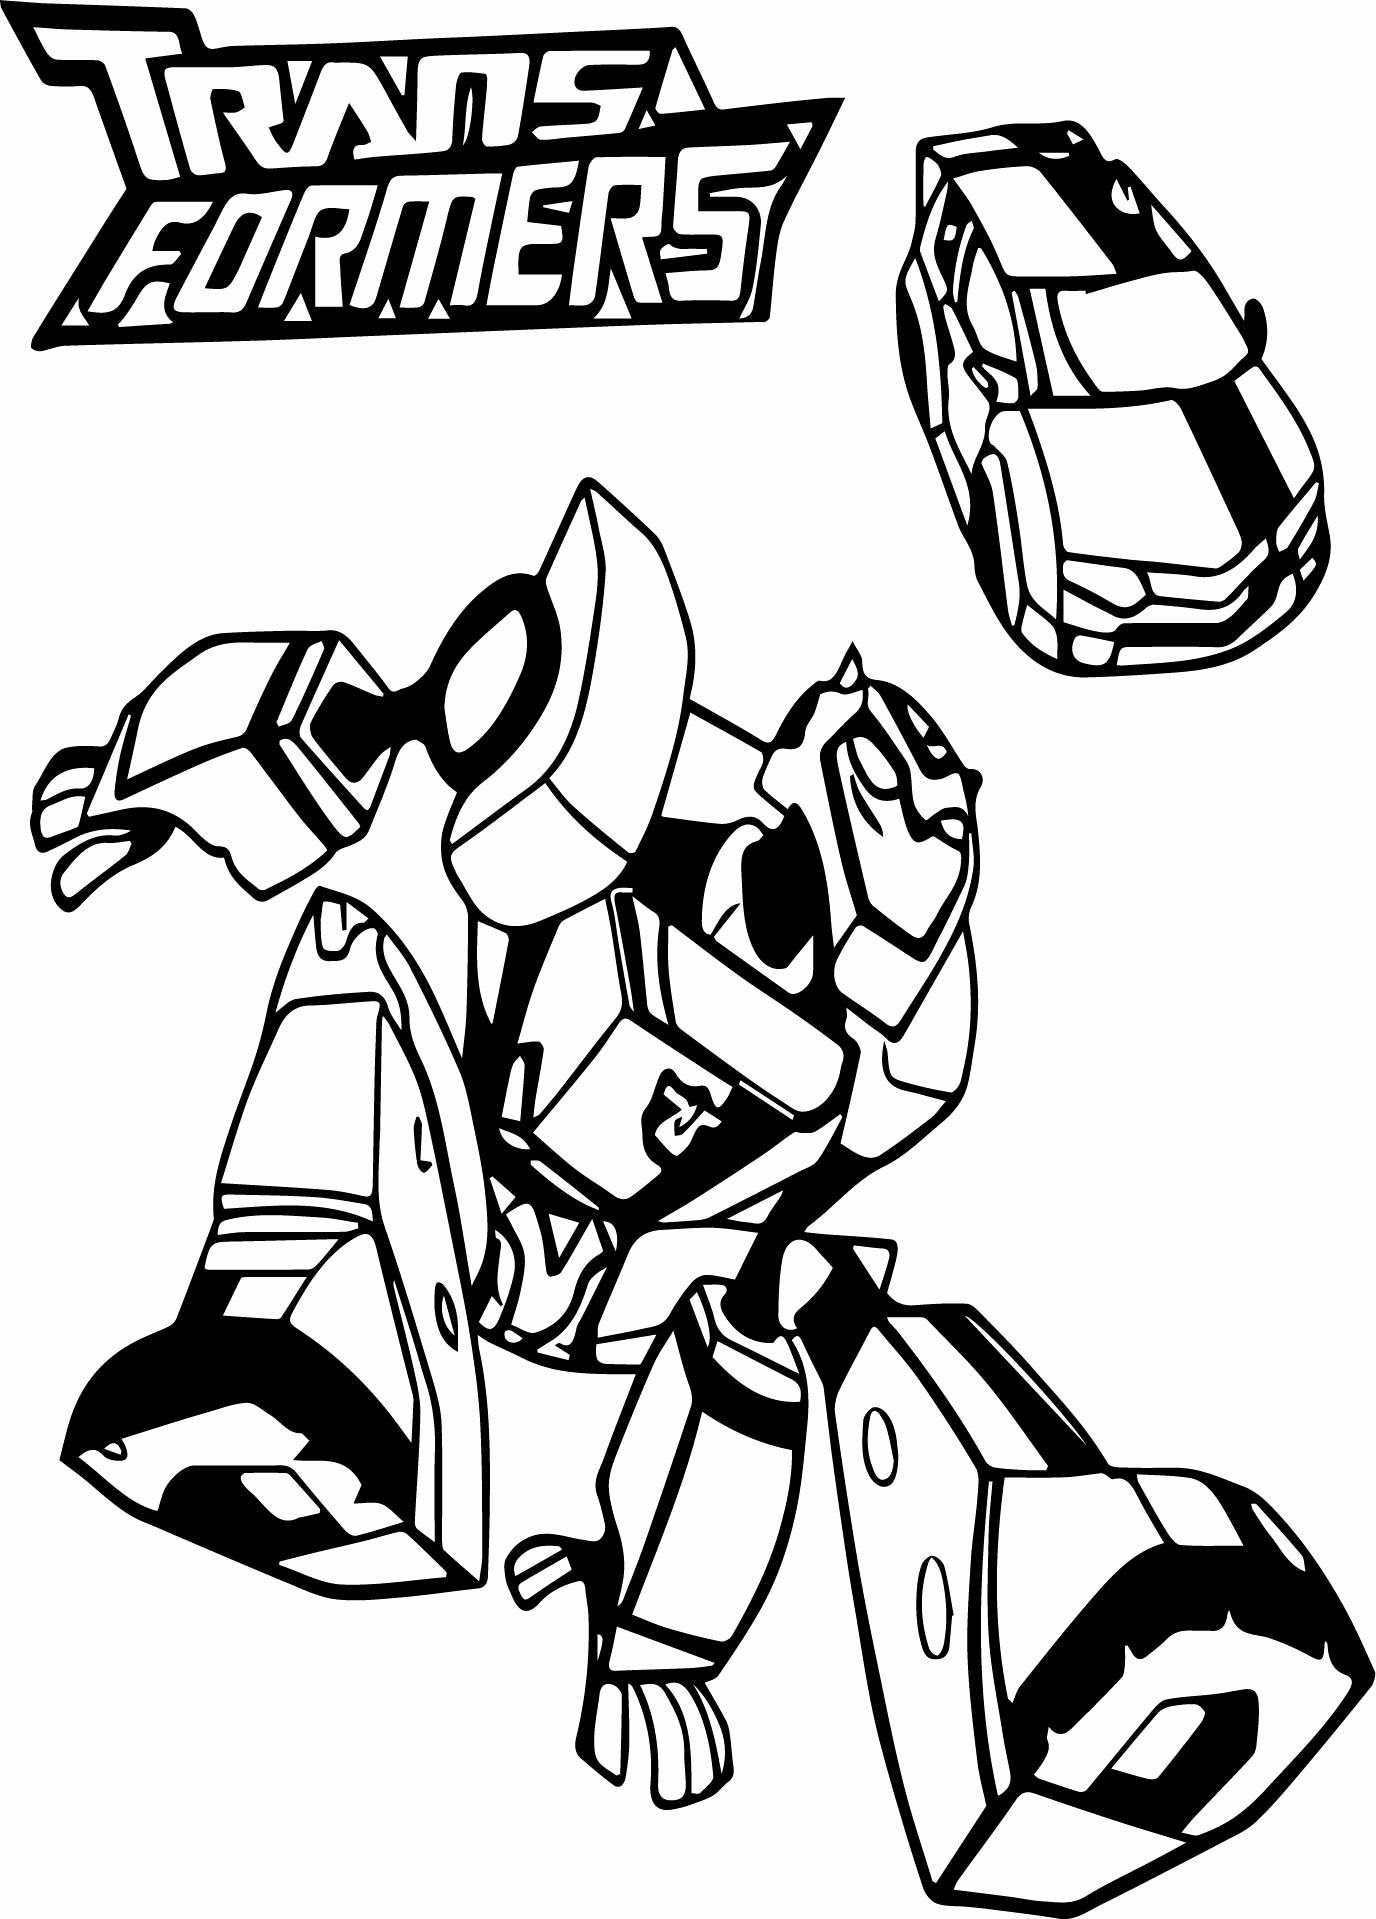 Transformers Bumblebee Coloring Page Inspirational 33 Transformers